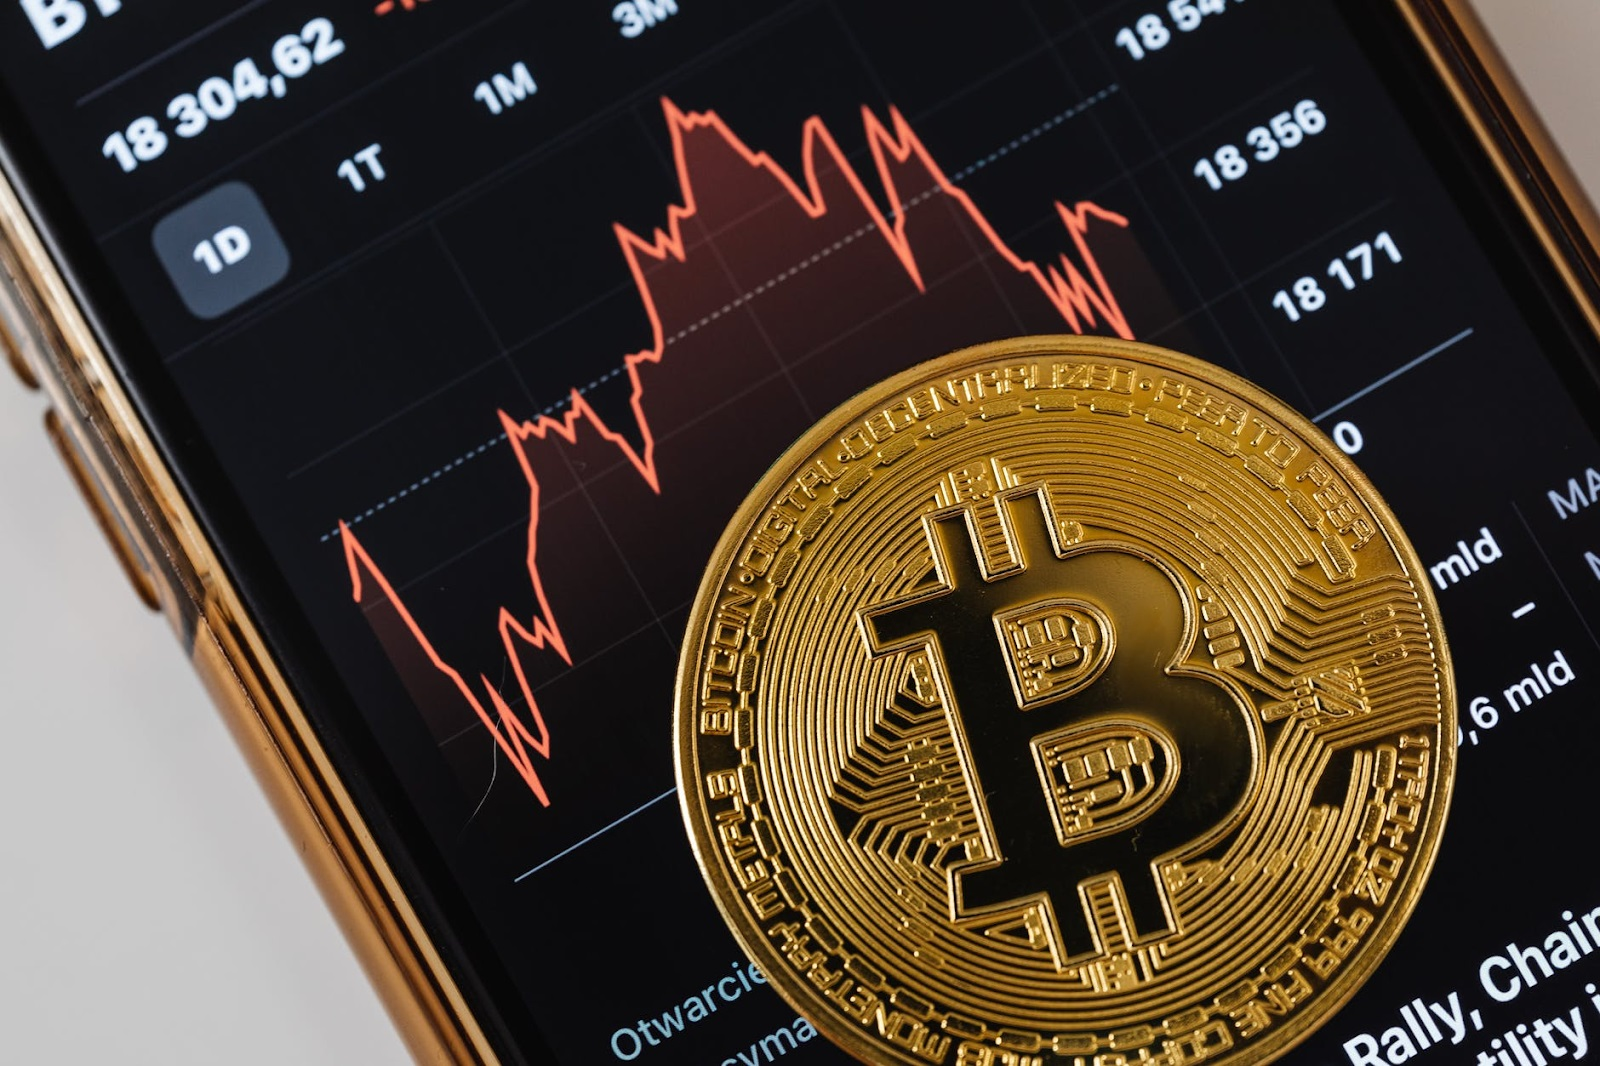 9 Hot and Reliable Cryptocurrency Exchange Platforms to Check 2